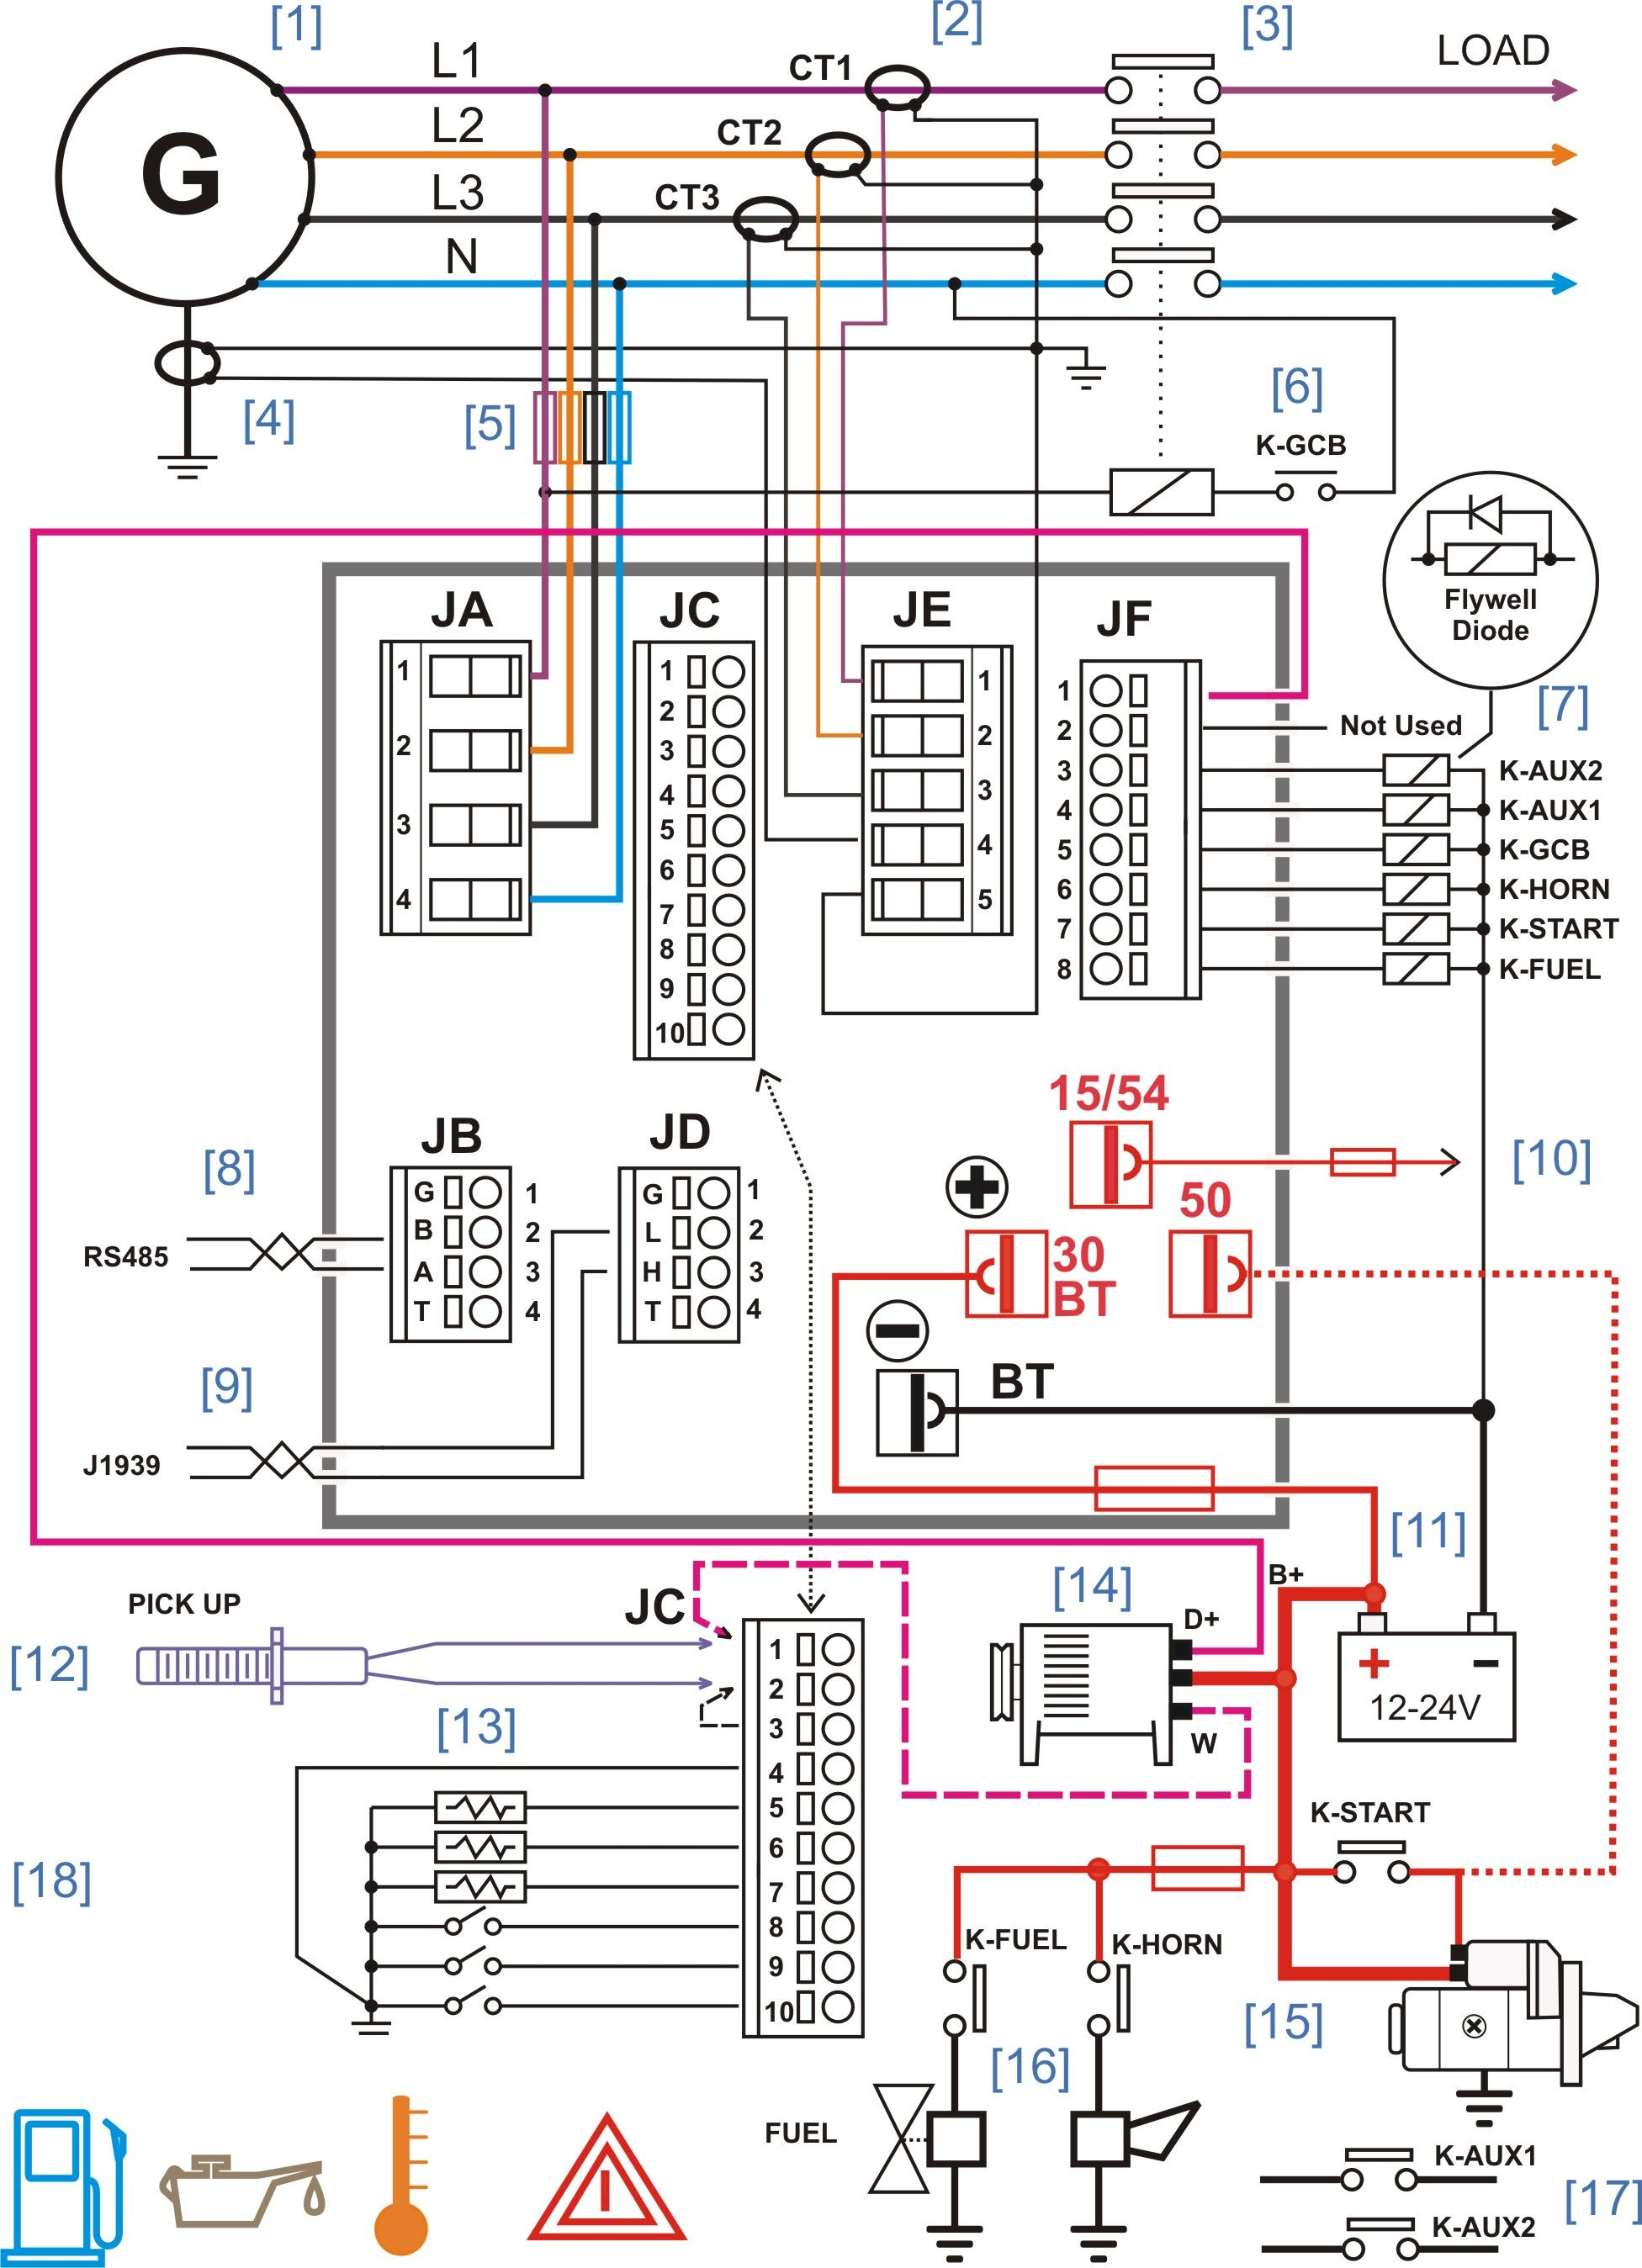 plc panel wiring diagram 19 kop savic family de \u2022 Egr Wiring Diagram diesel generator control panel wiring diagram diesel generators in rh pinterest com plc control panel wiring